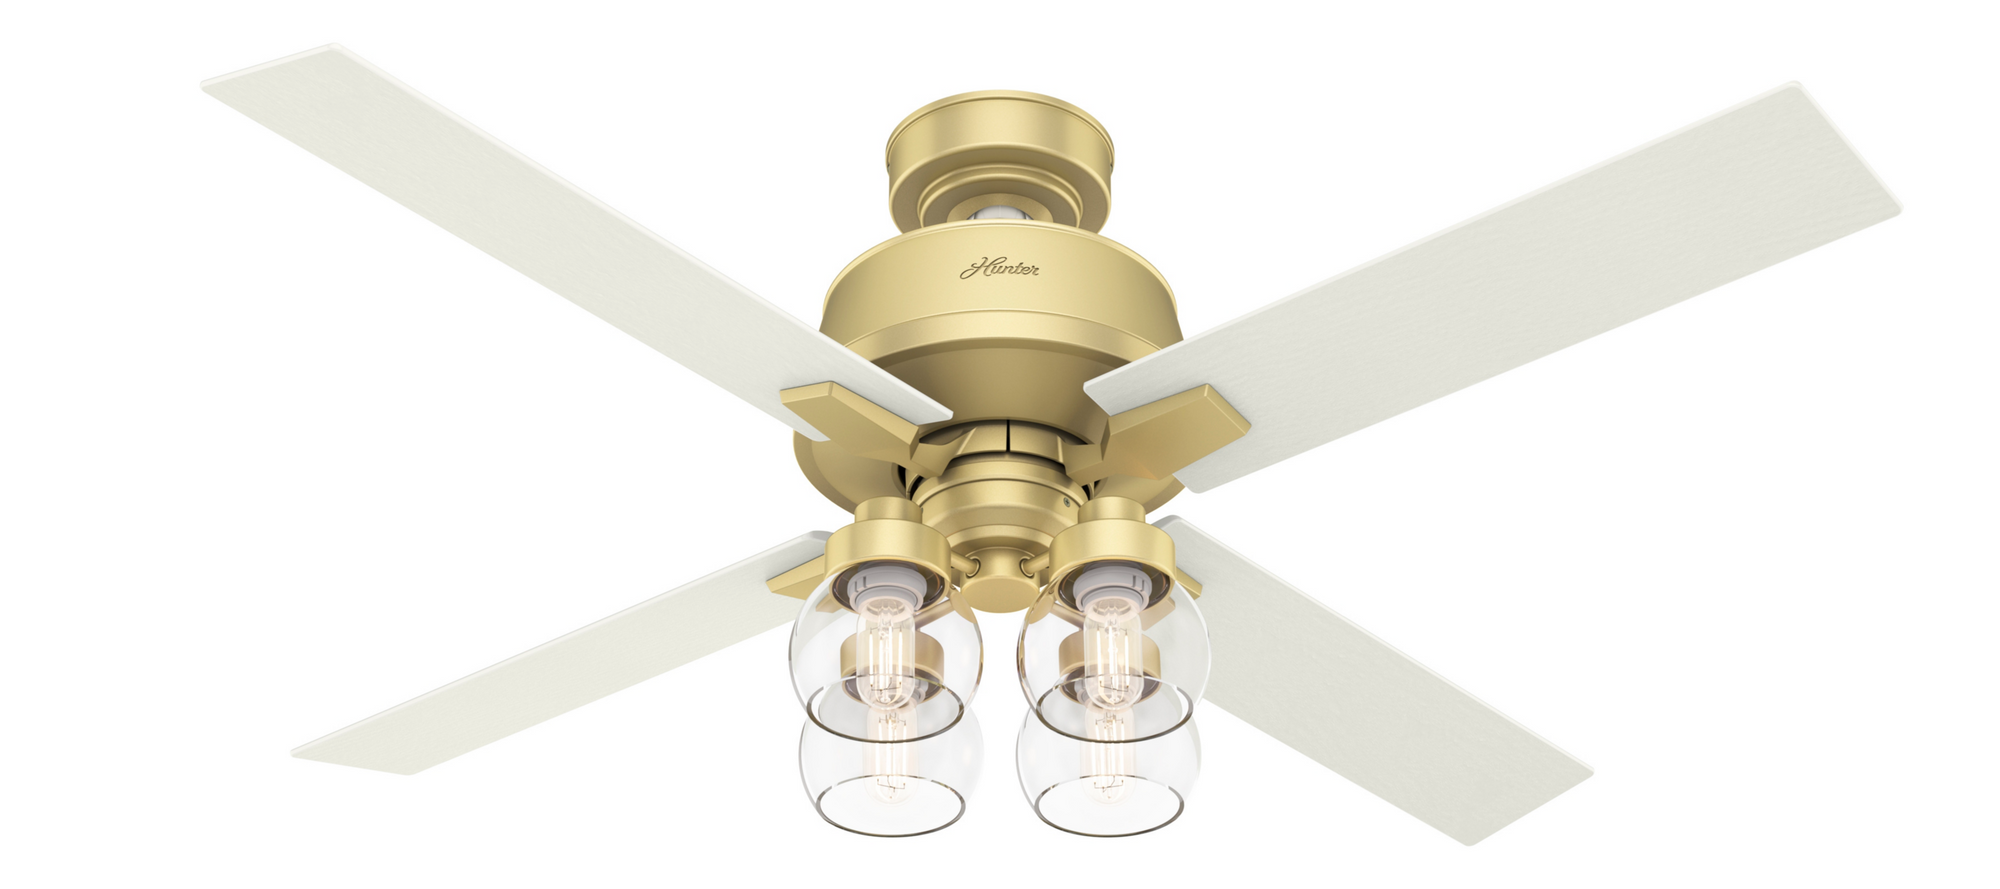 Hunter Indoor Astor Ceiling Fan with LED LightJD inch, Brass, 59651